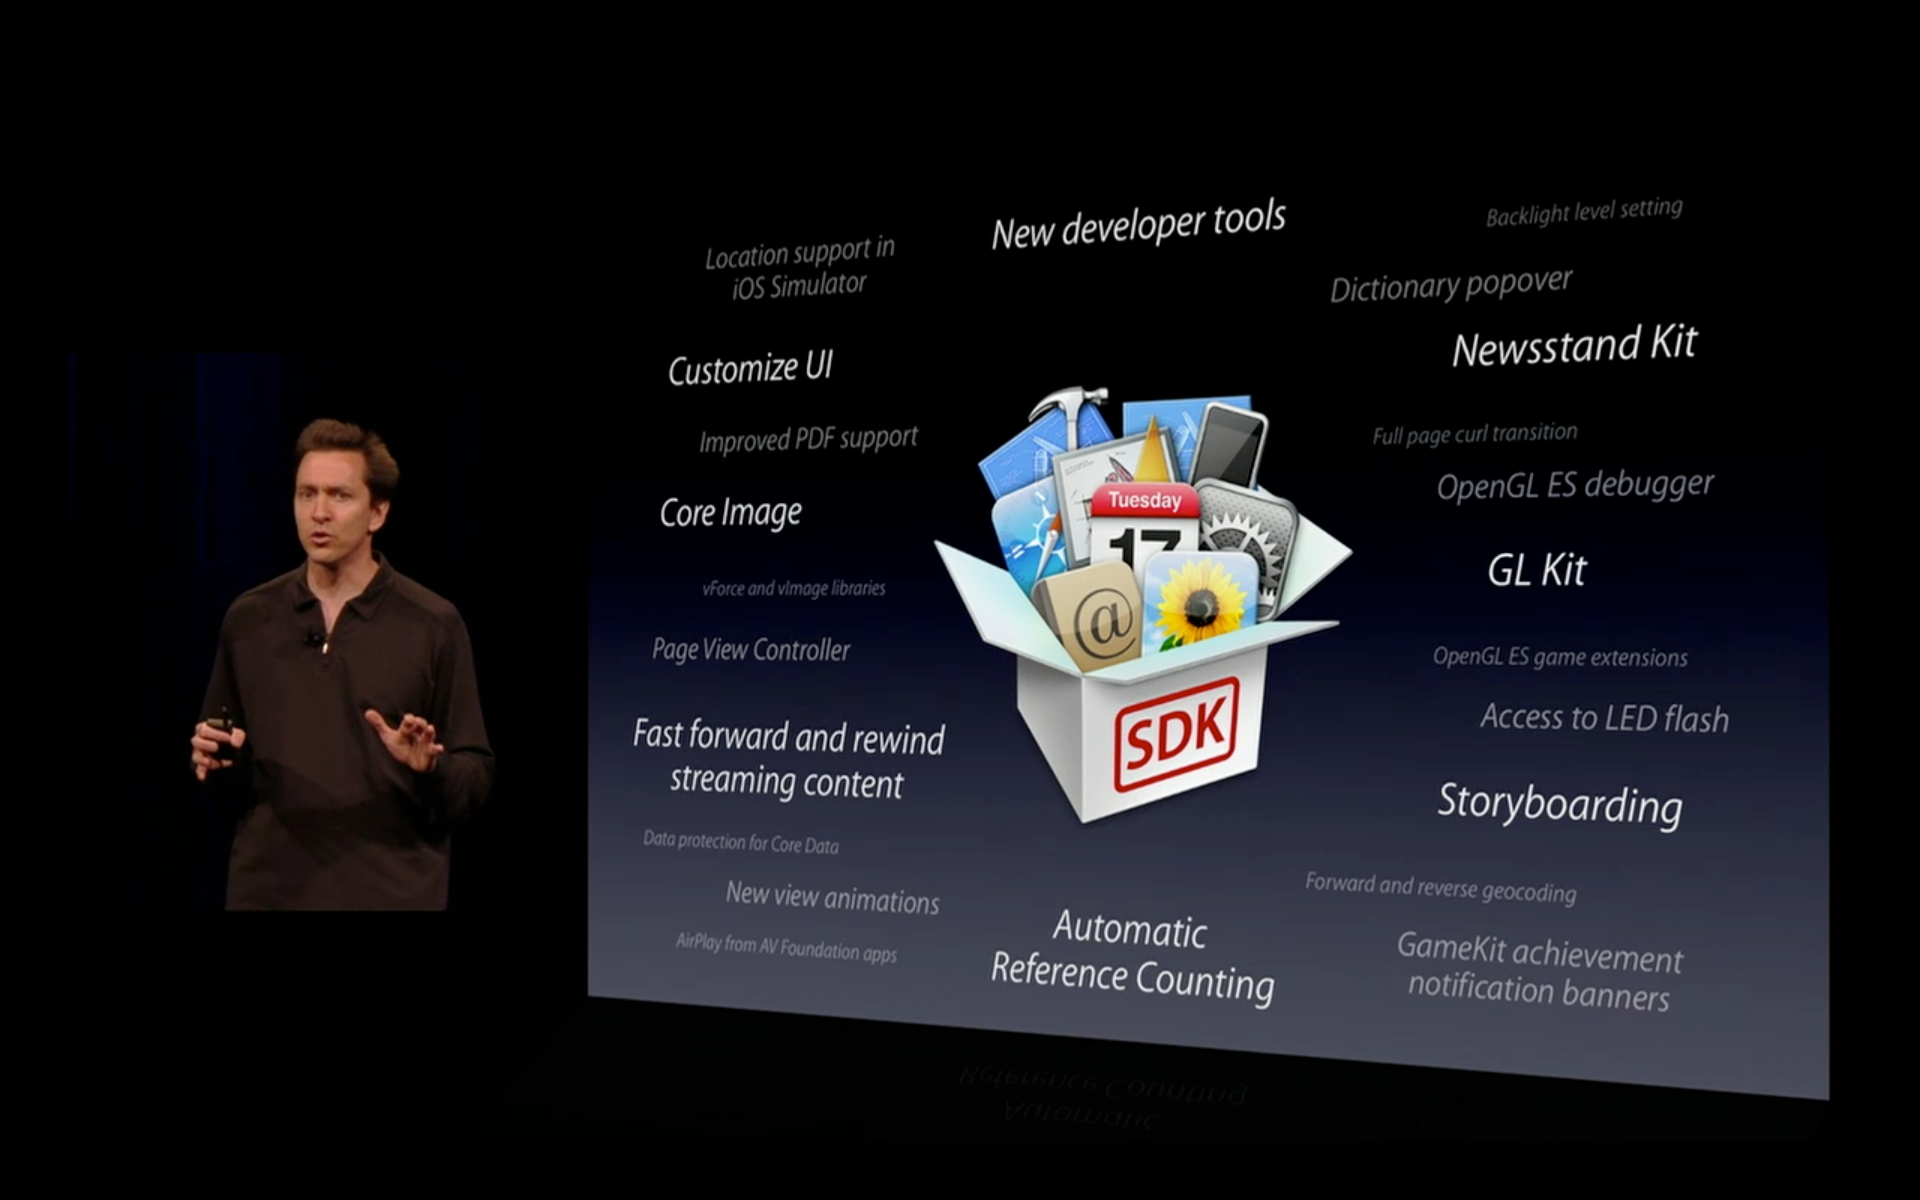 Scott Forstall introducing new developer features in iOS 5 at WWDC 2011